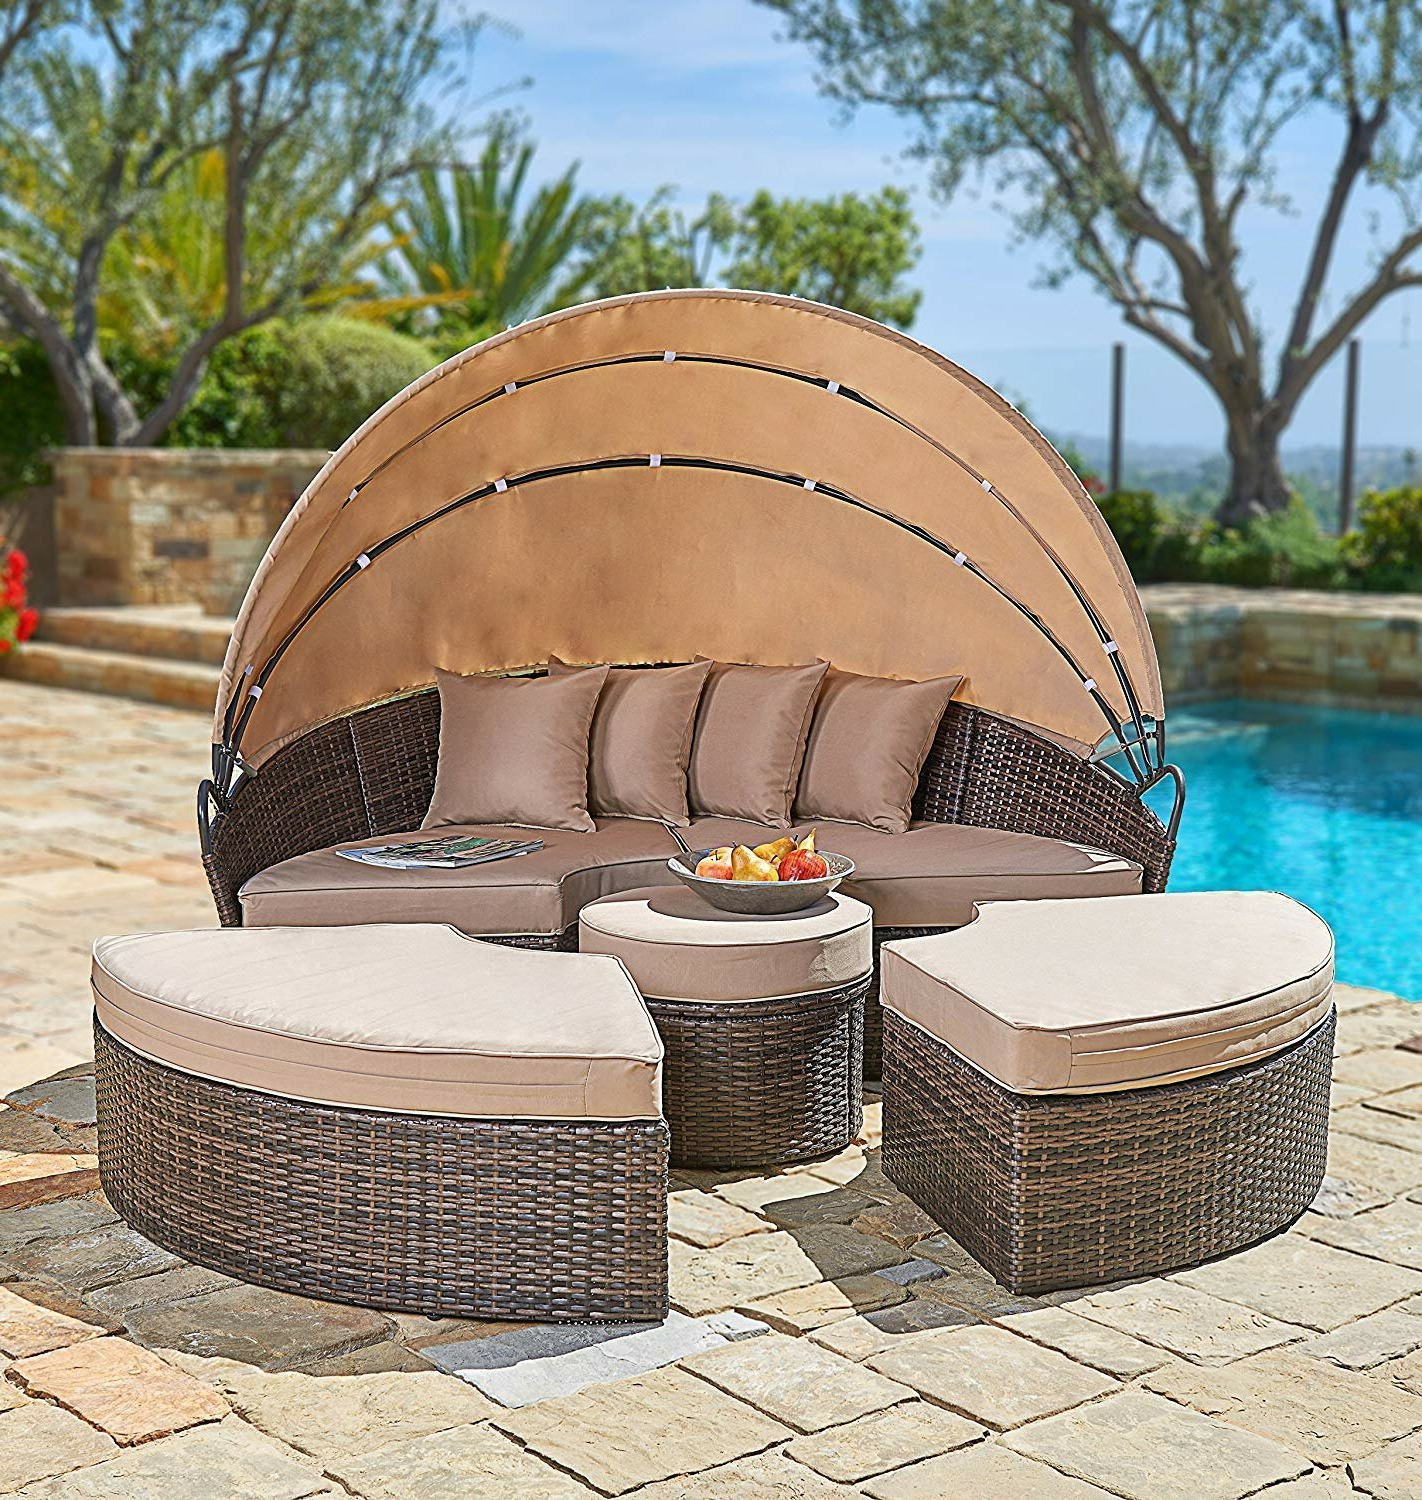 Harlow Patio Daybeds With Cushions Inside Trendy Behling Canopy Patio Daybed With Cushions (Gallery 17 of 20)